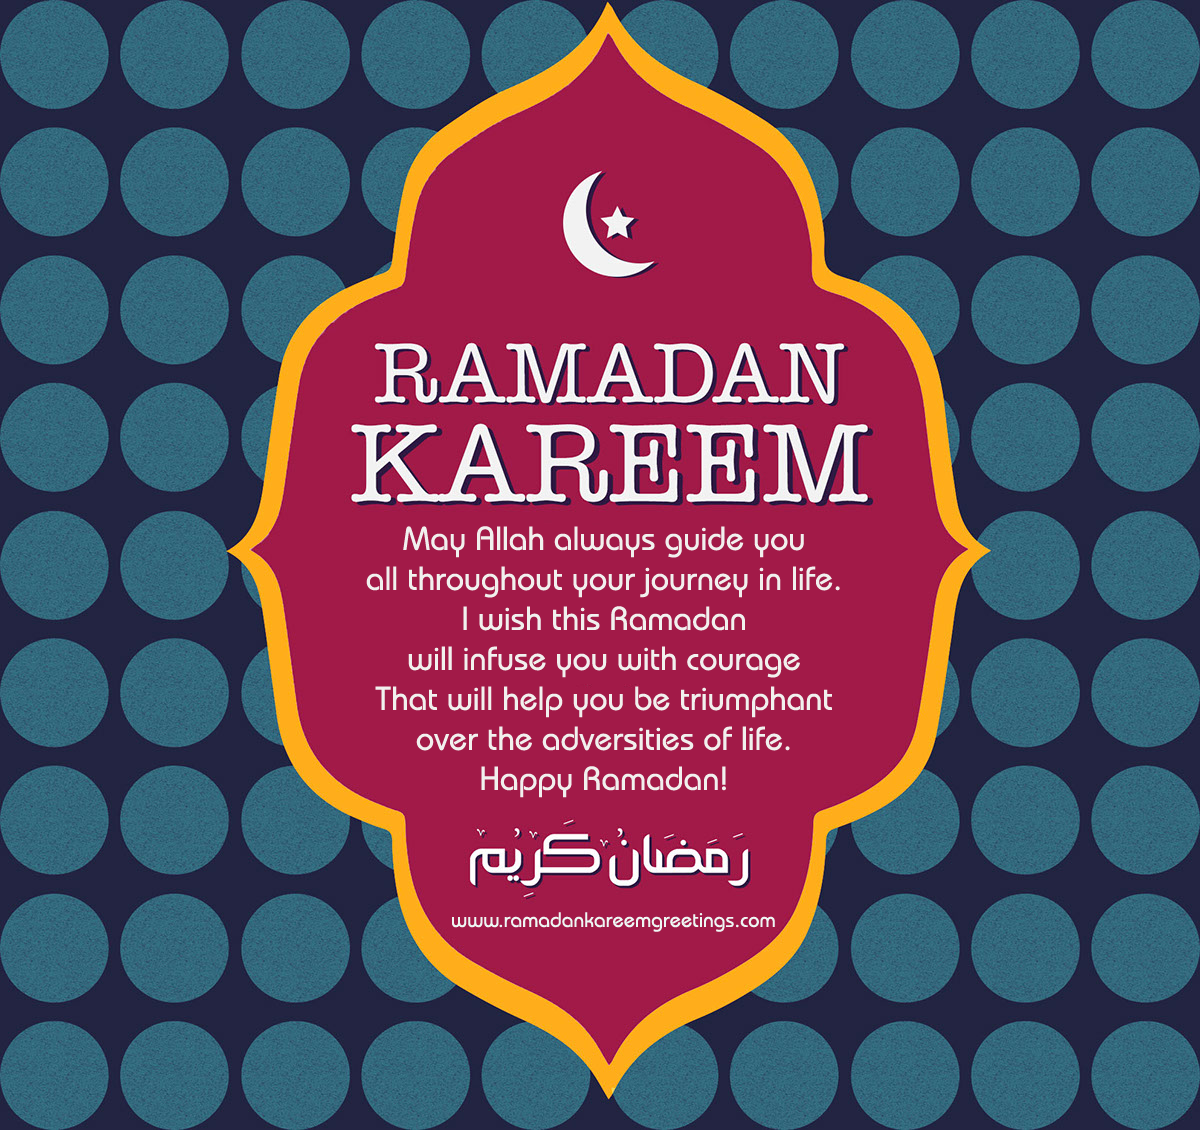 Ramadan Kareem Message 2021 Ramadan Wishes Ramadan Ramadan Messages